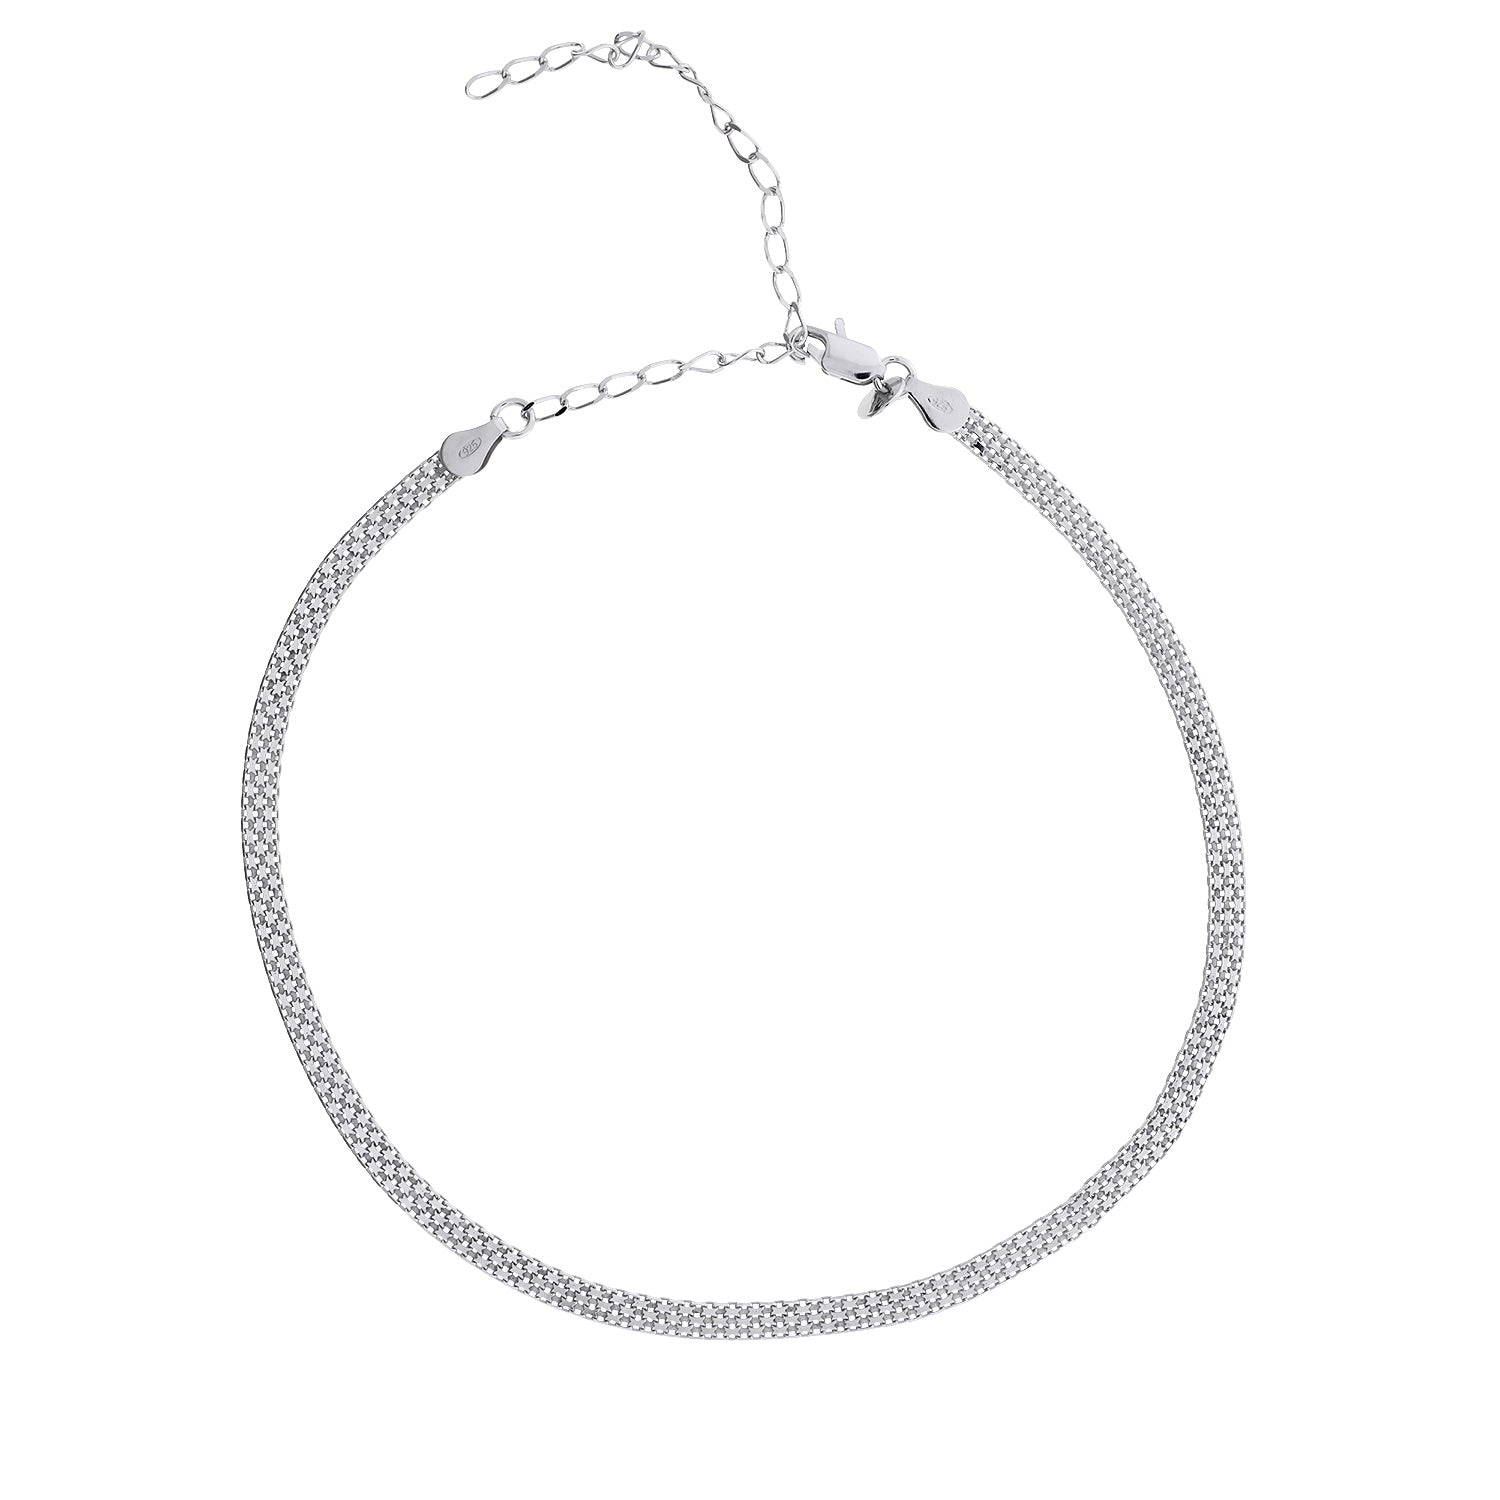 Silver Flat Box Chain Choker Necklace